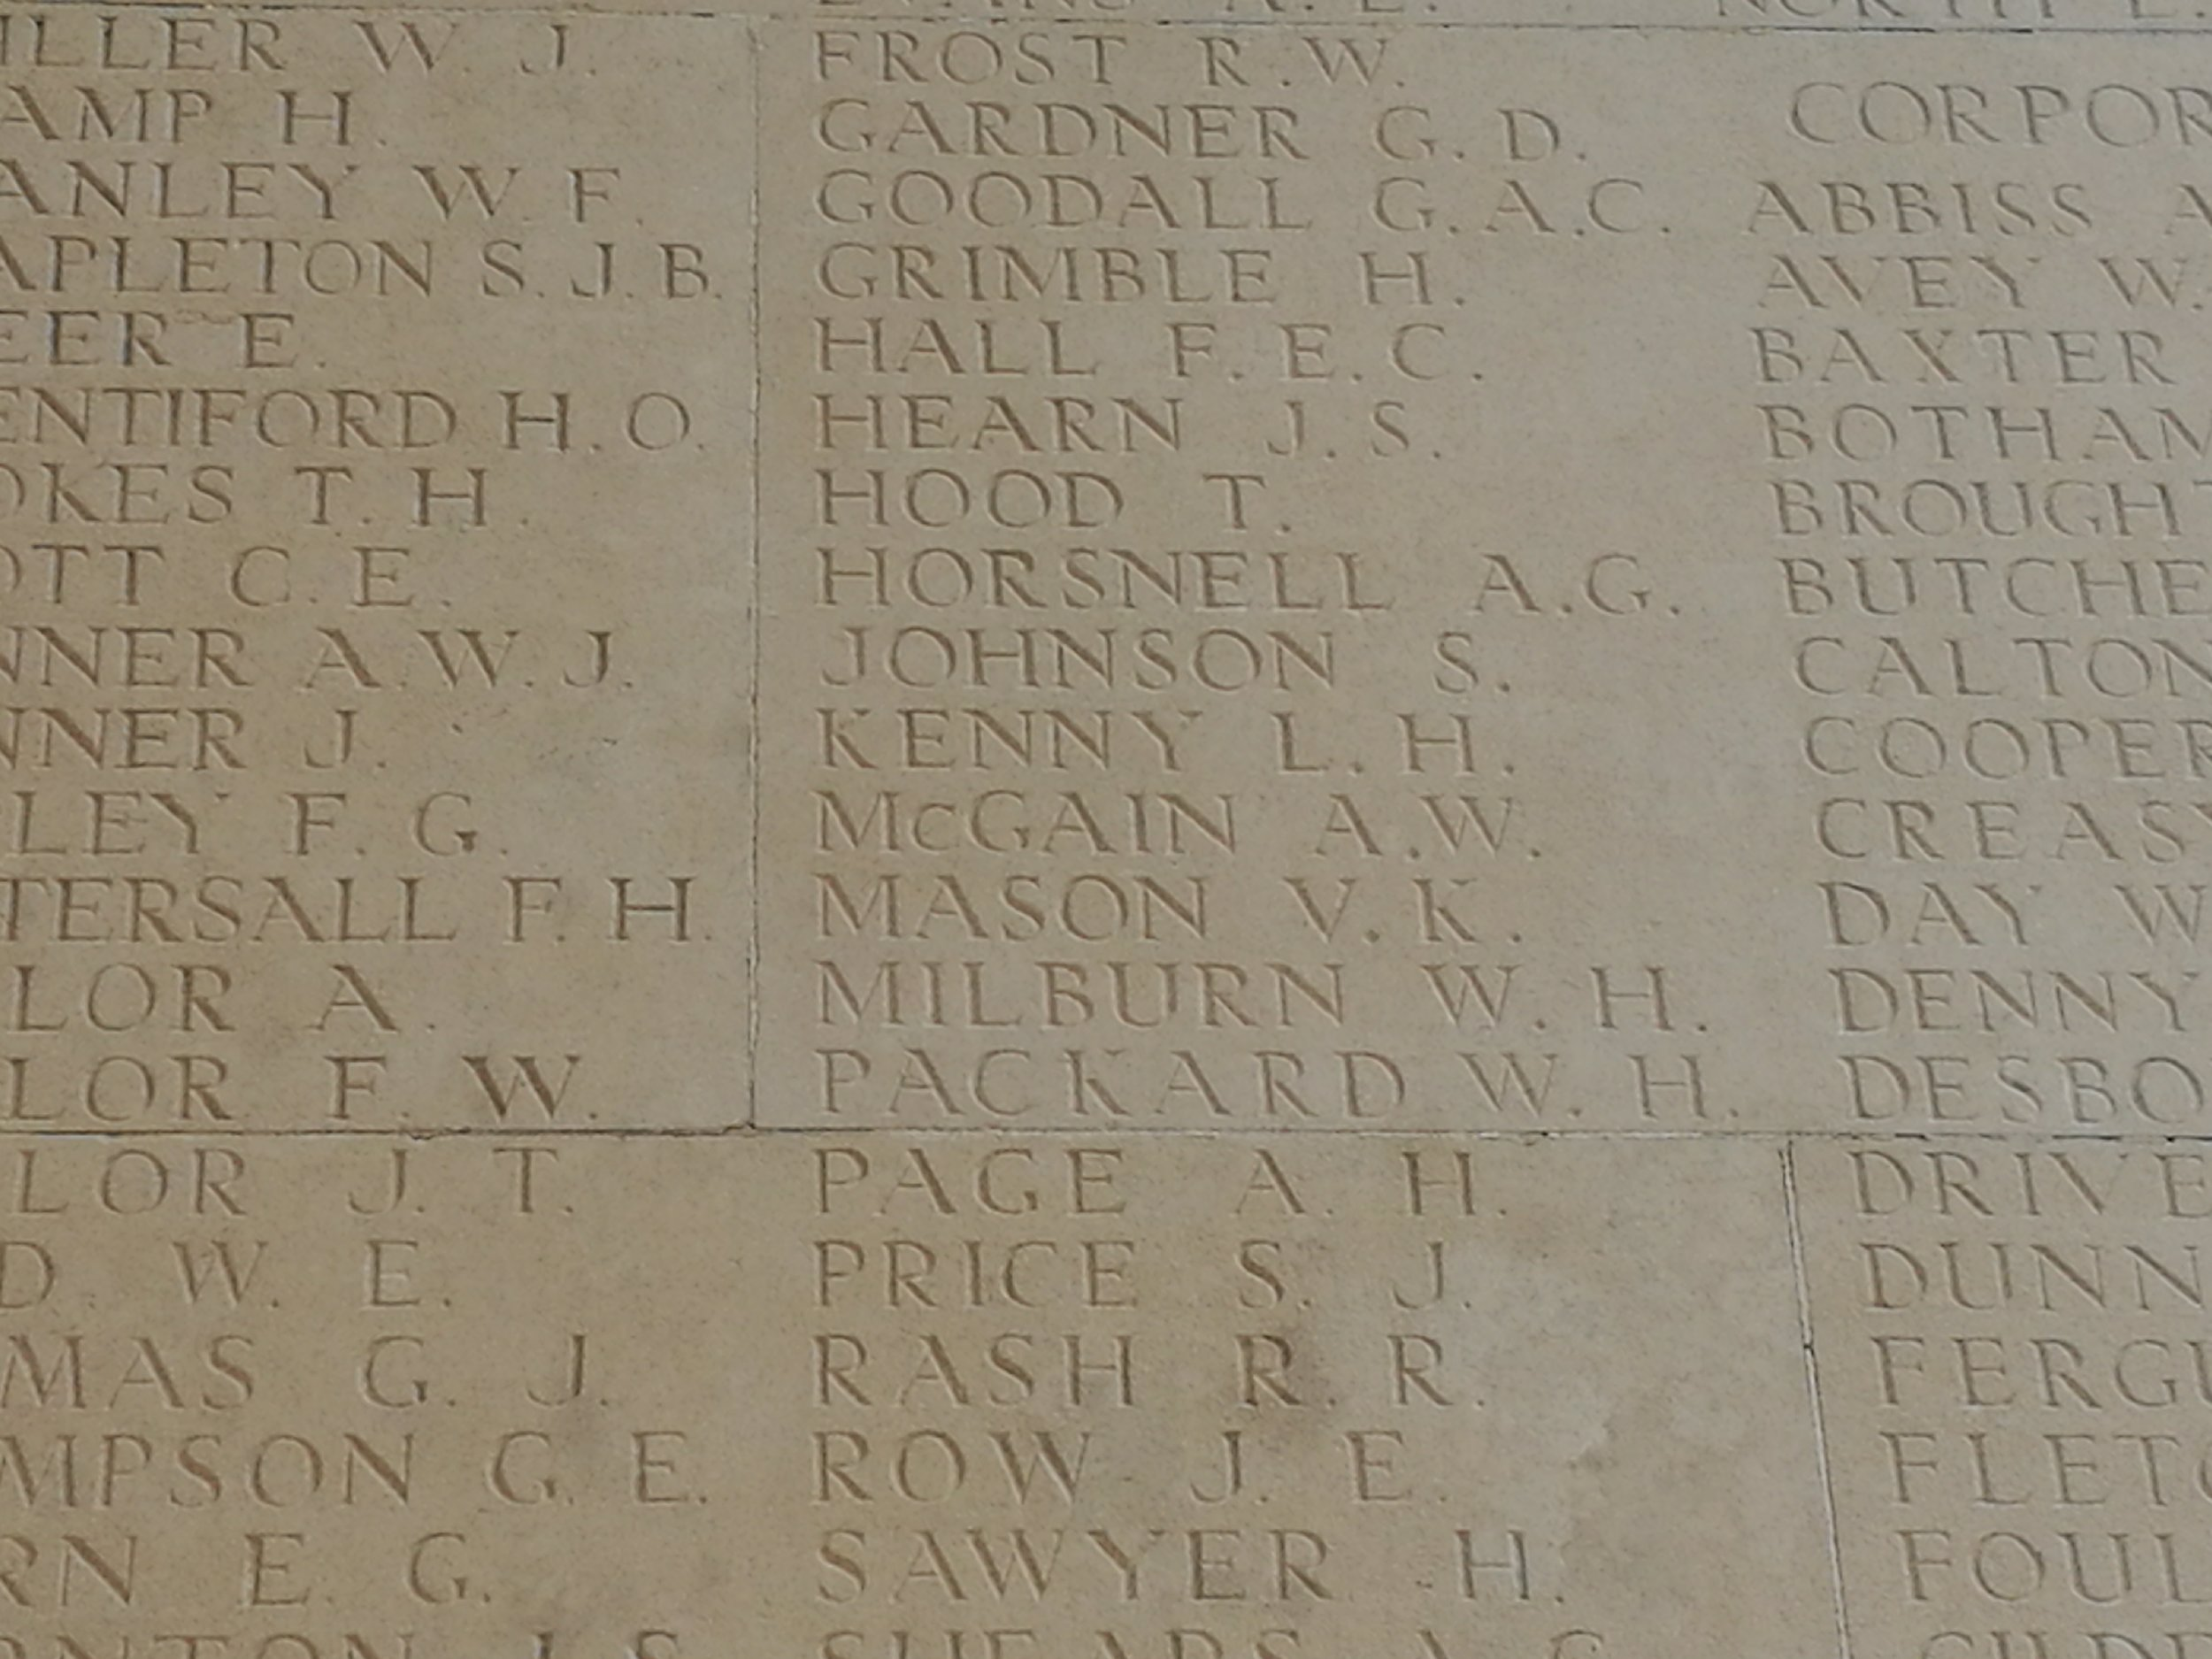 Ashley McGain's name is on Pier and Face 1C of Thiepval Memorial